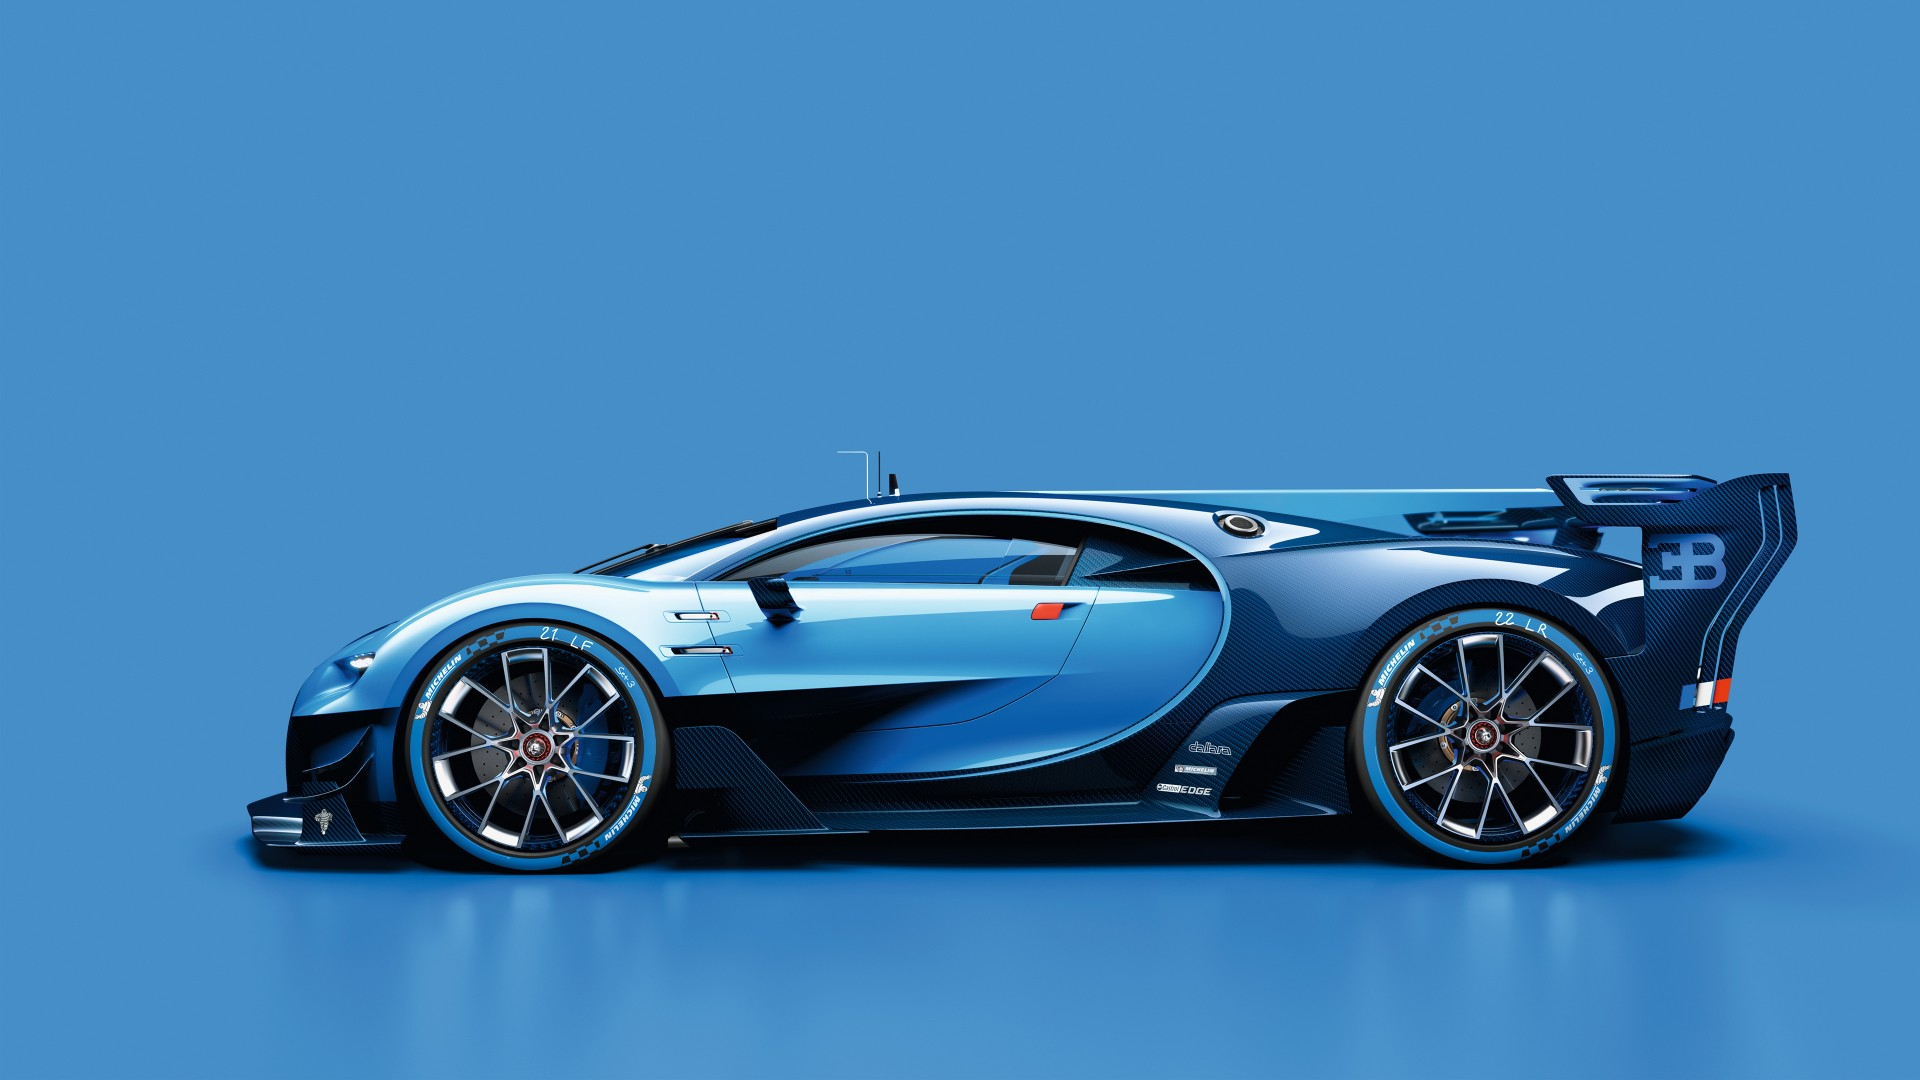 2015 bugatti vision gran turismo 7 wallpaper hd car wallpapers id 5728. Black Bedroom Furniture Sets. Home Design Ideas